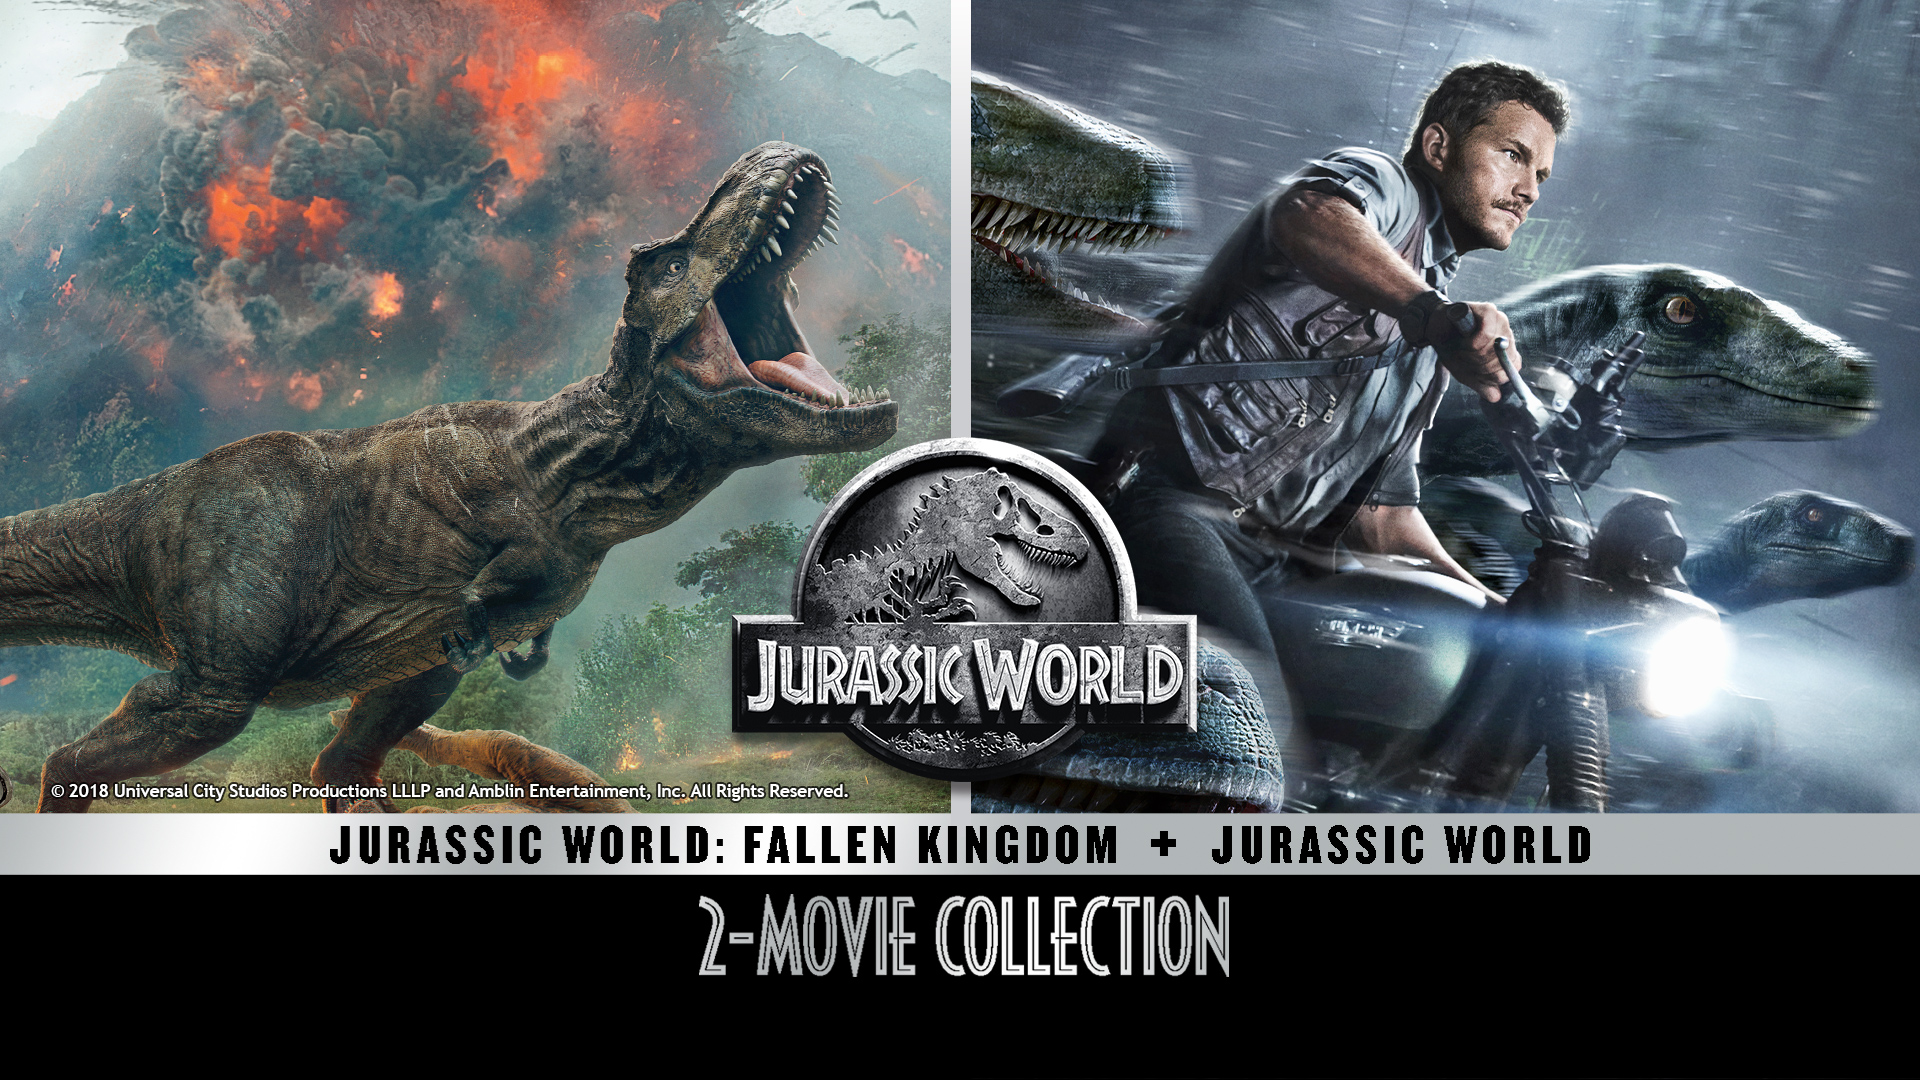 JURASSIC WORLD 2 MOVIE COLLECTION